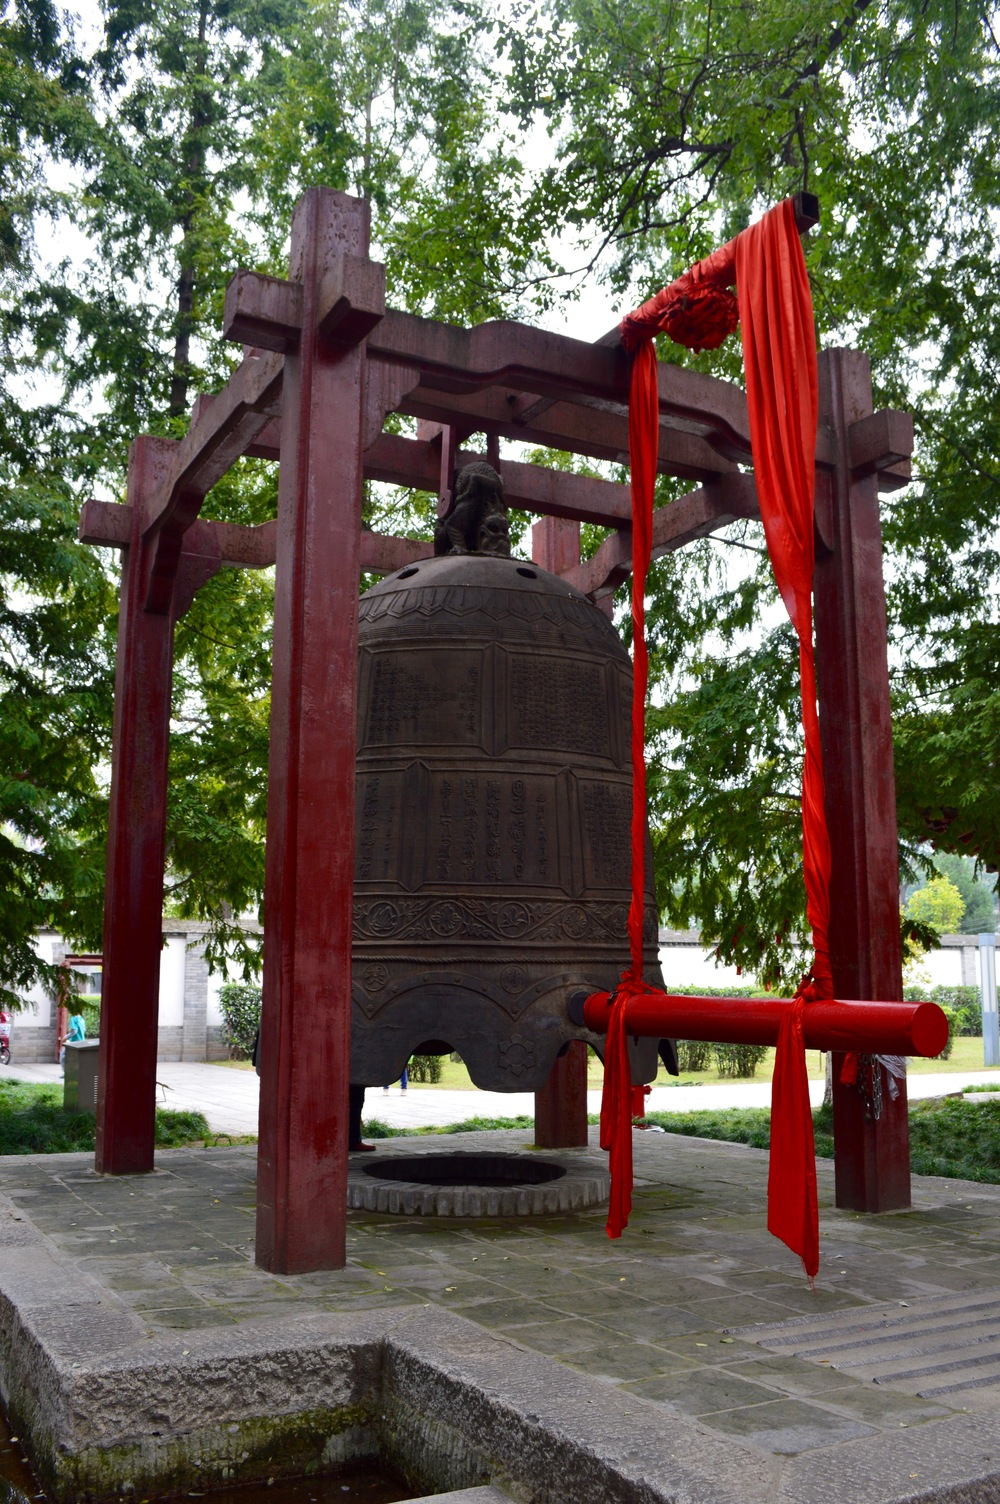 Old Buddhist bell near Small Goose Pagoda, Xi'an.